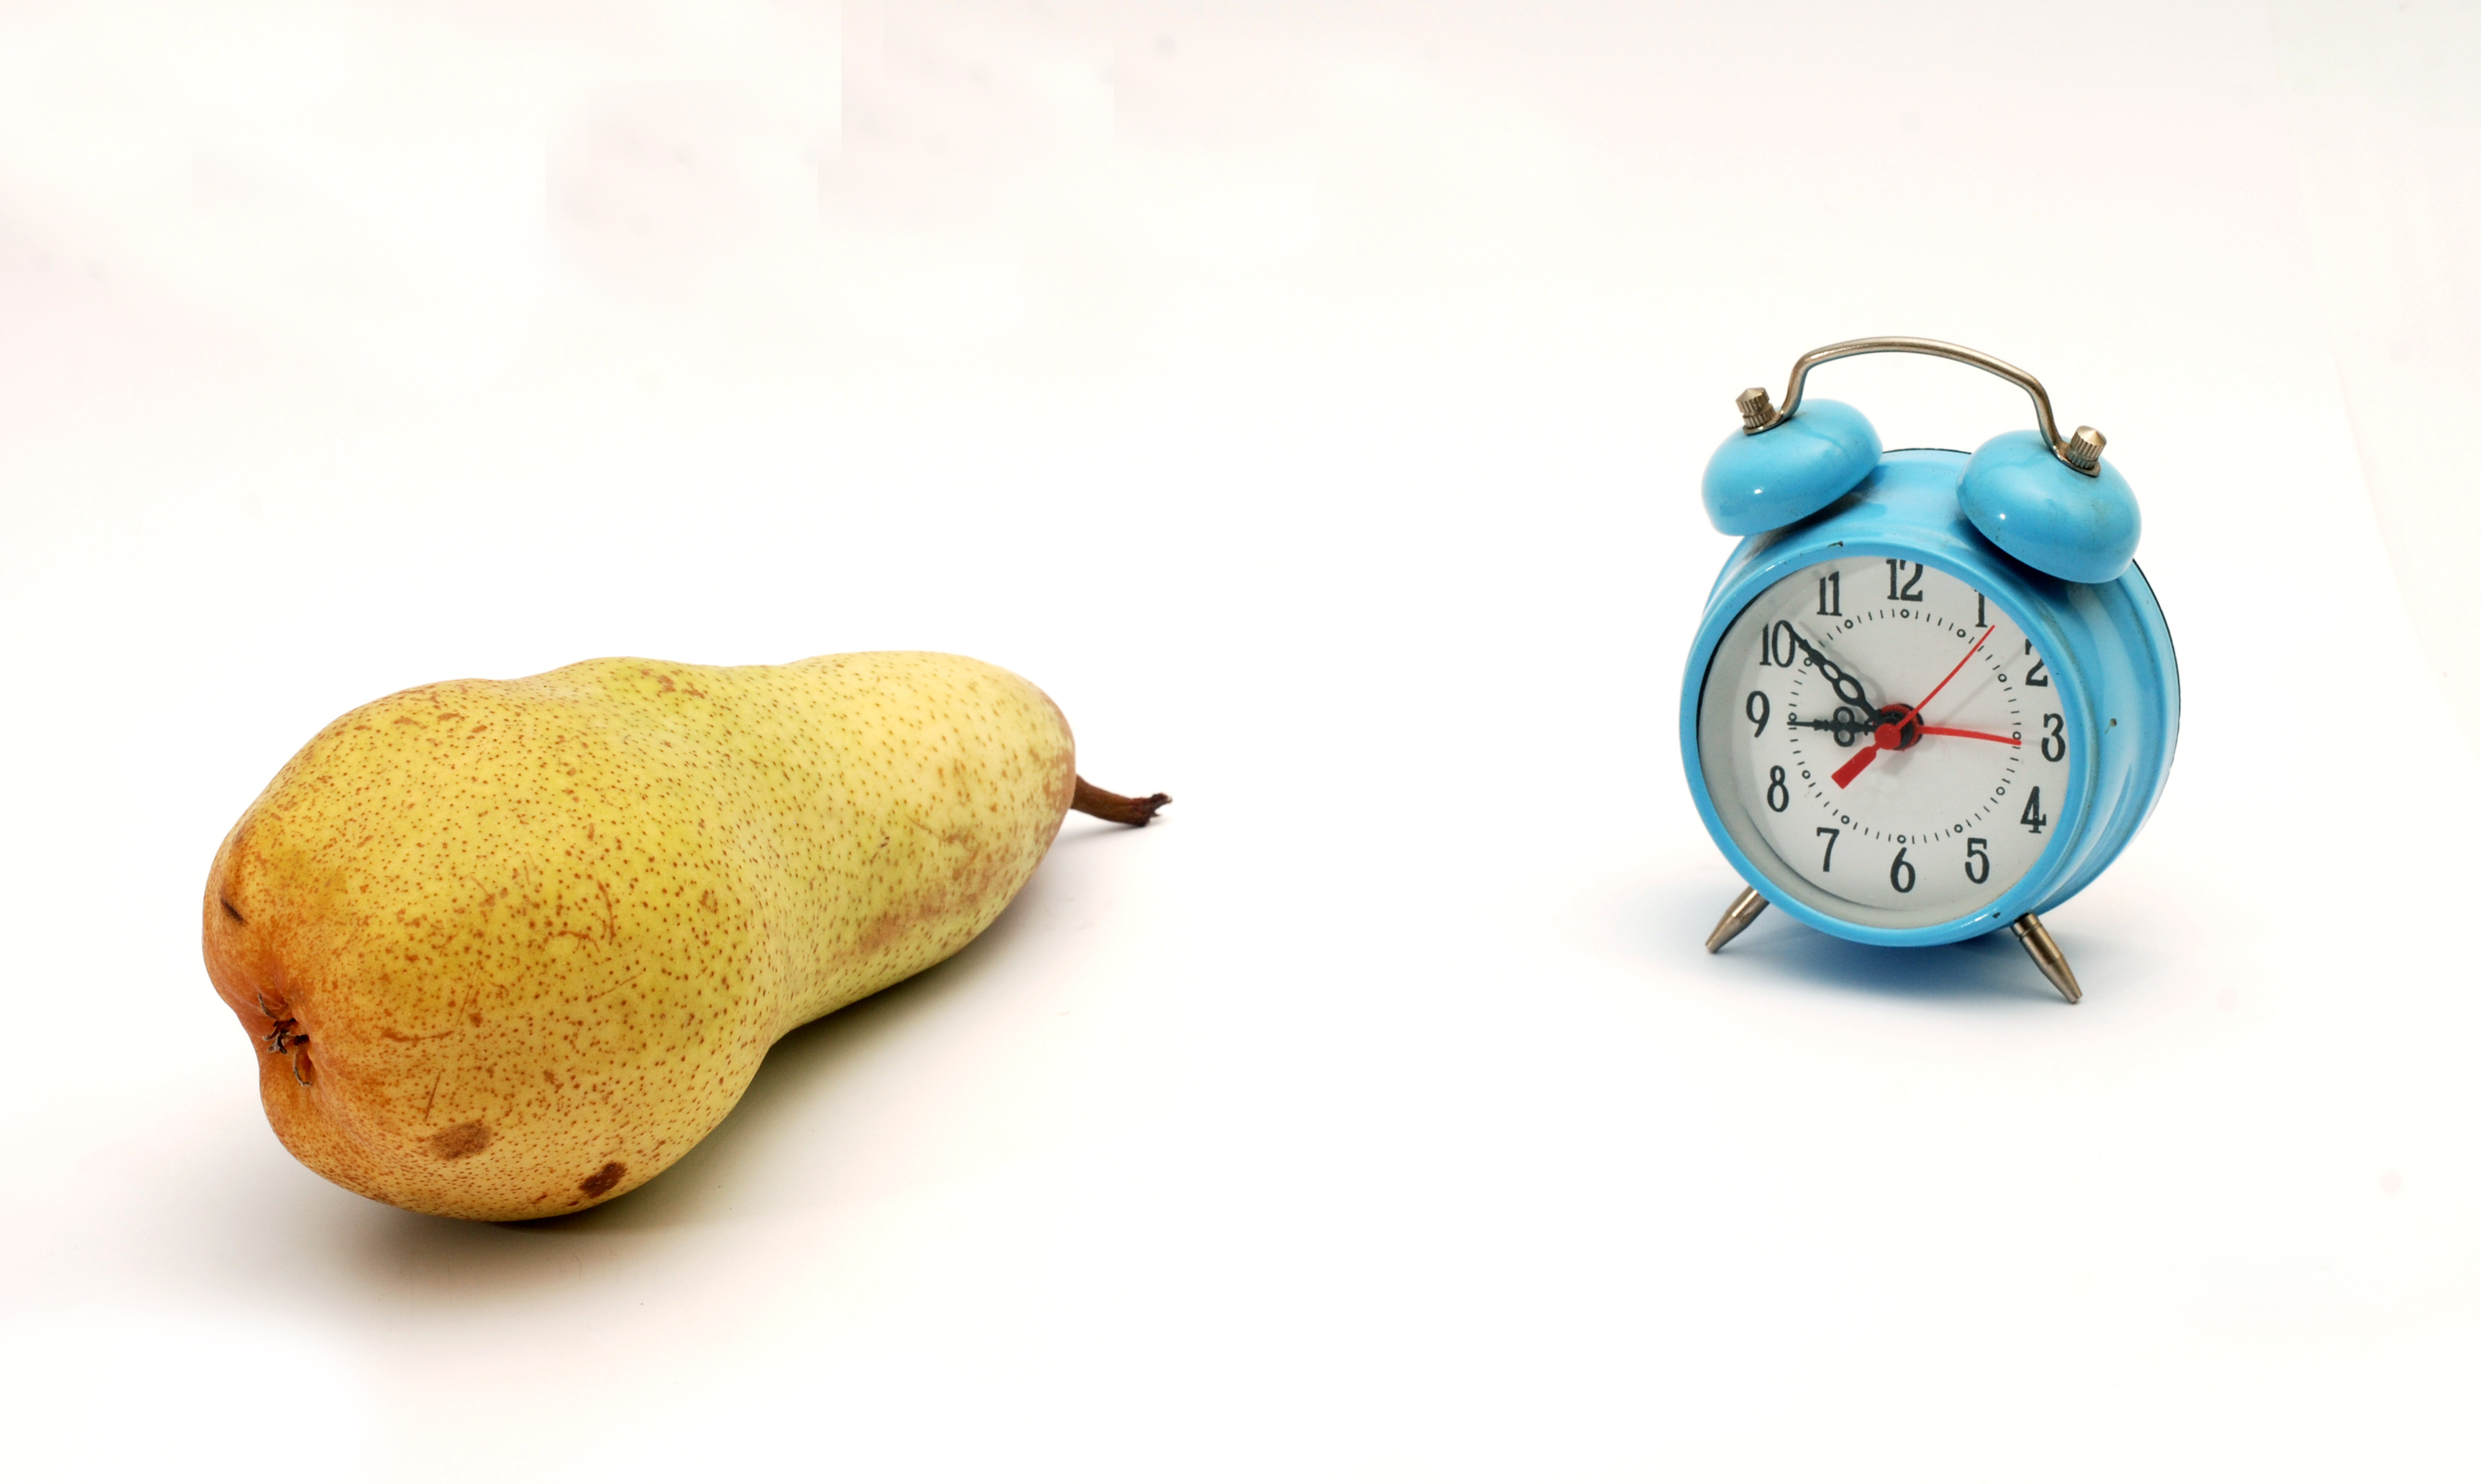 Pear and a clock on a white background.